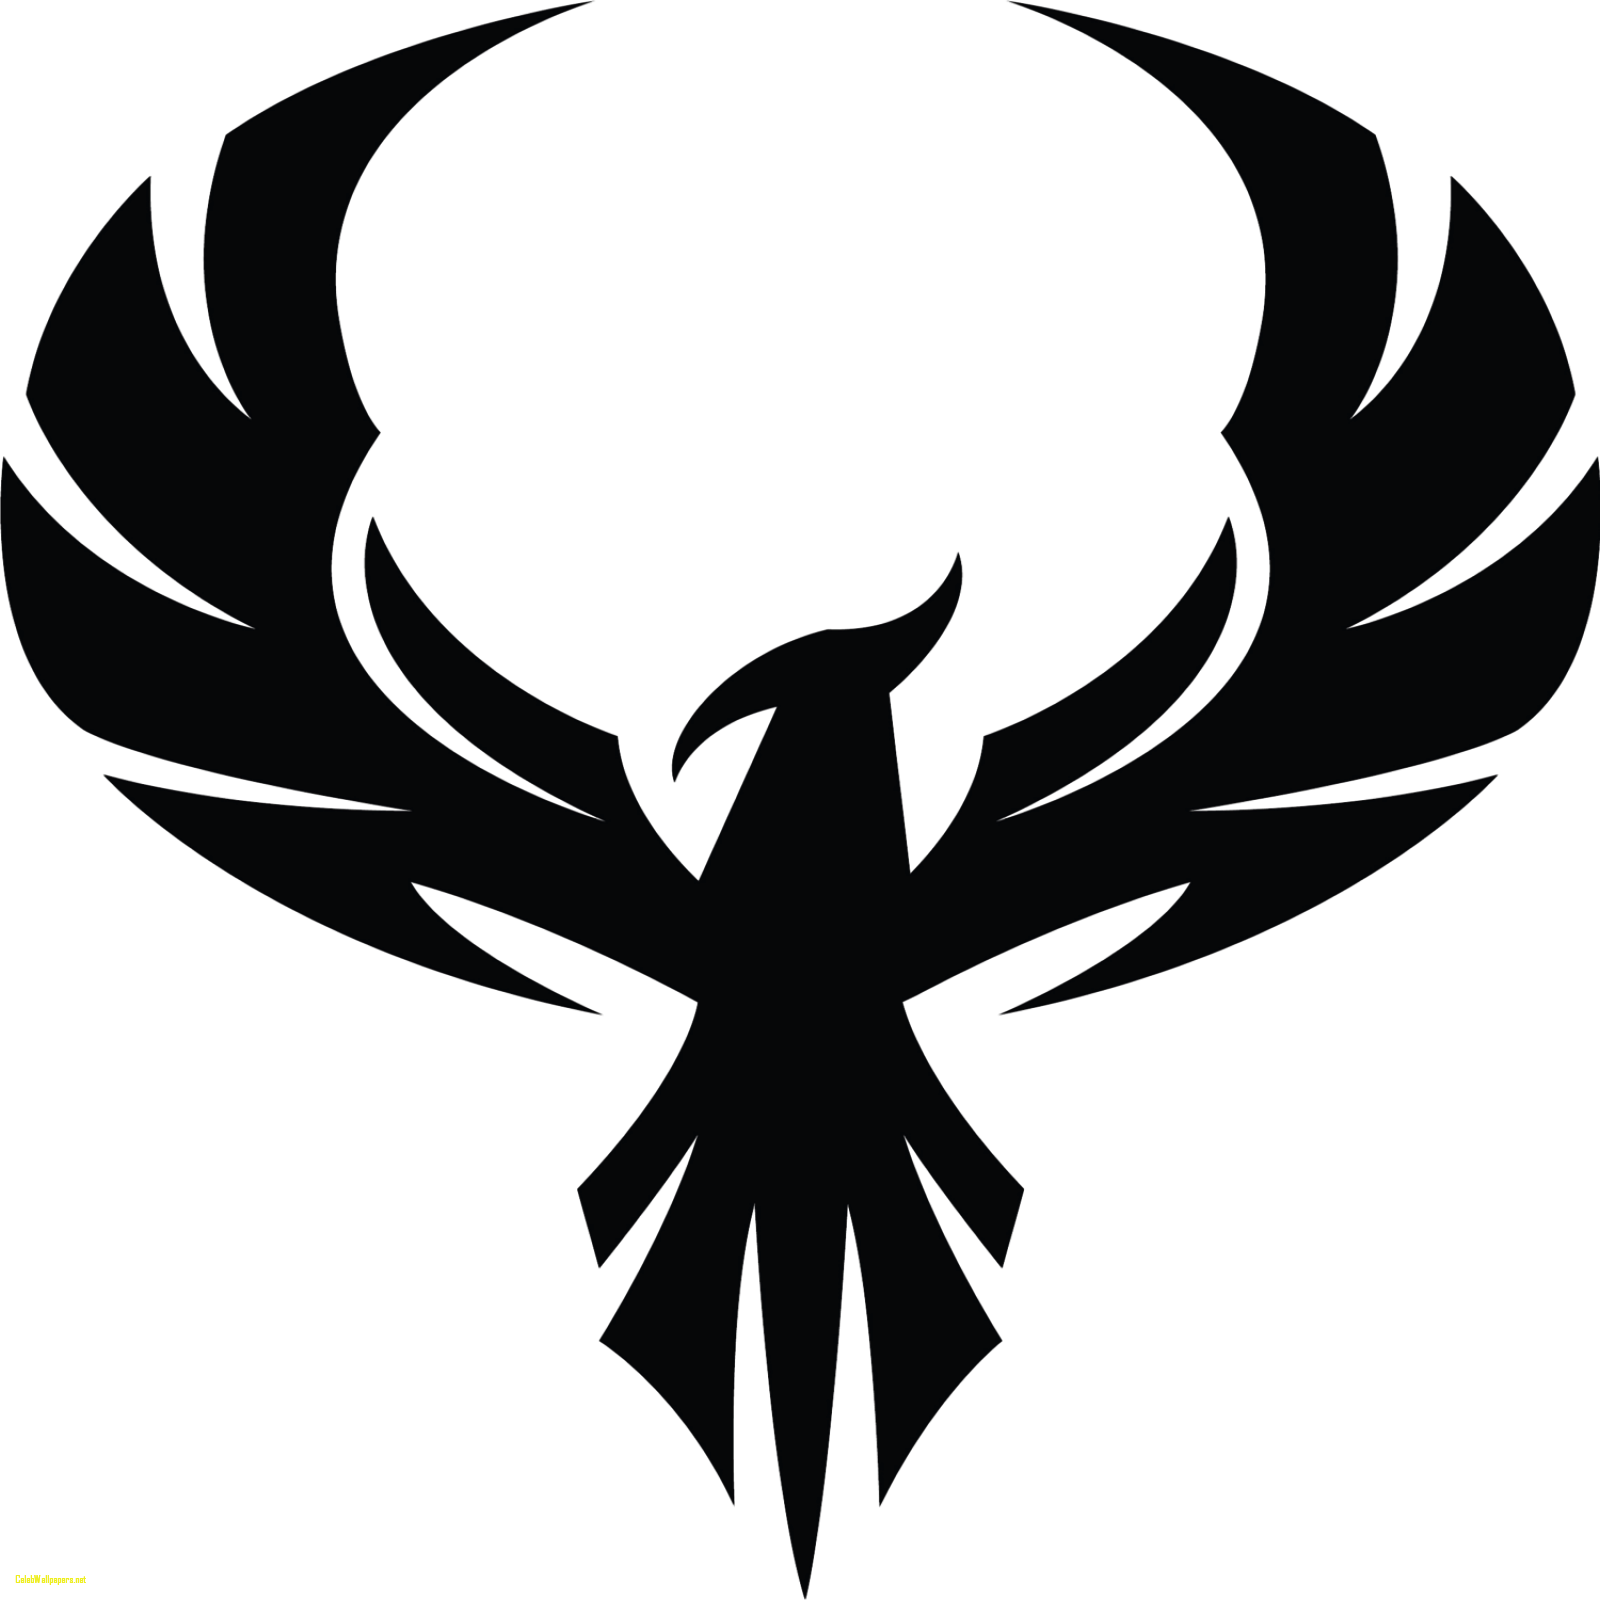 Silhouette at getdrawings com. Phoenix clipart